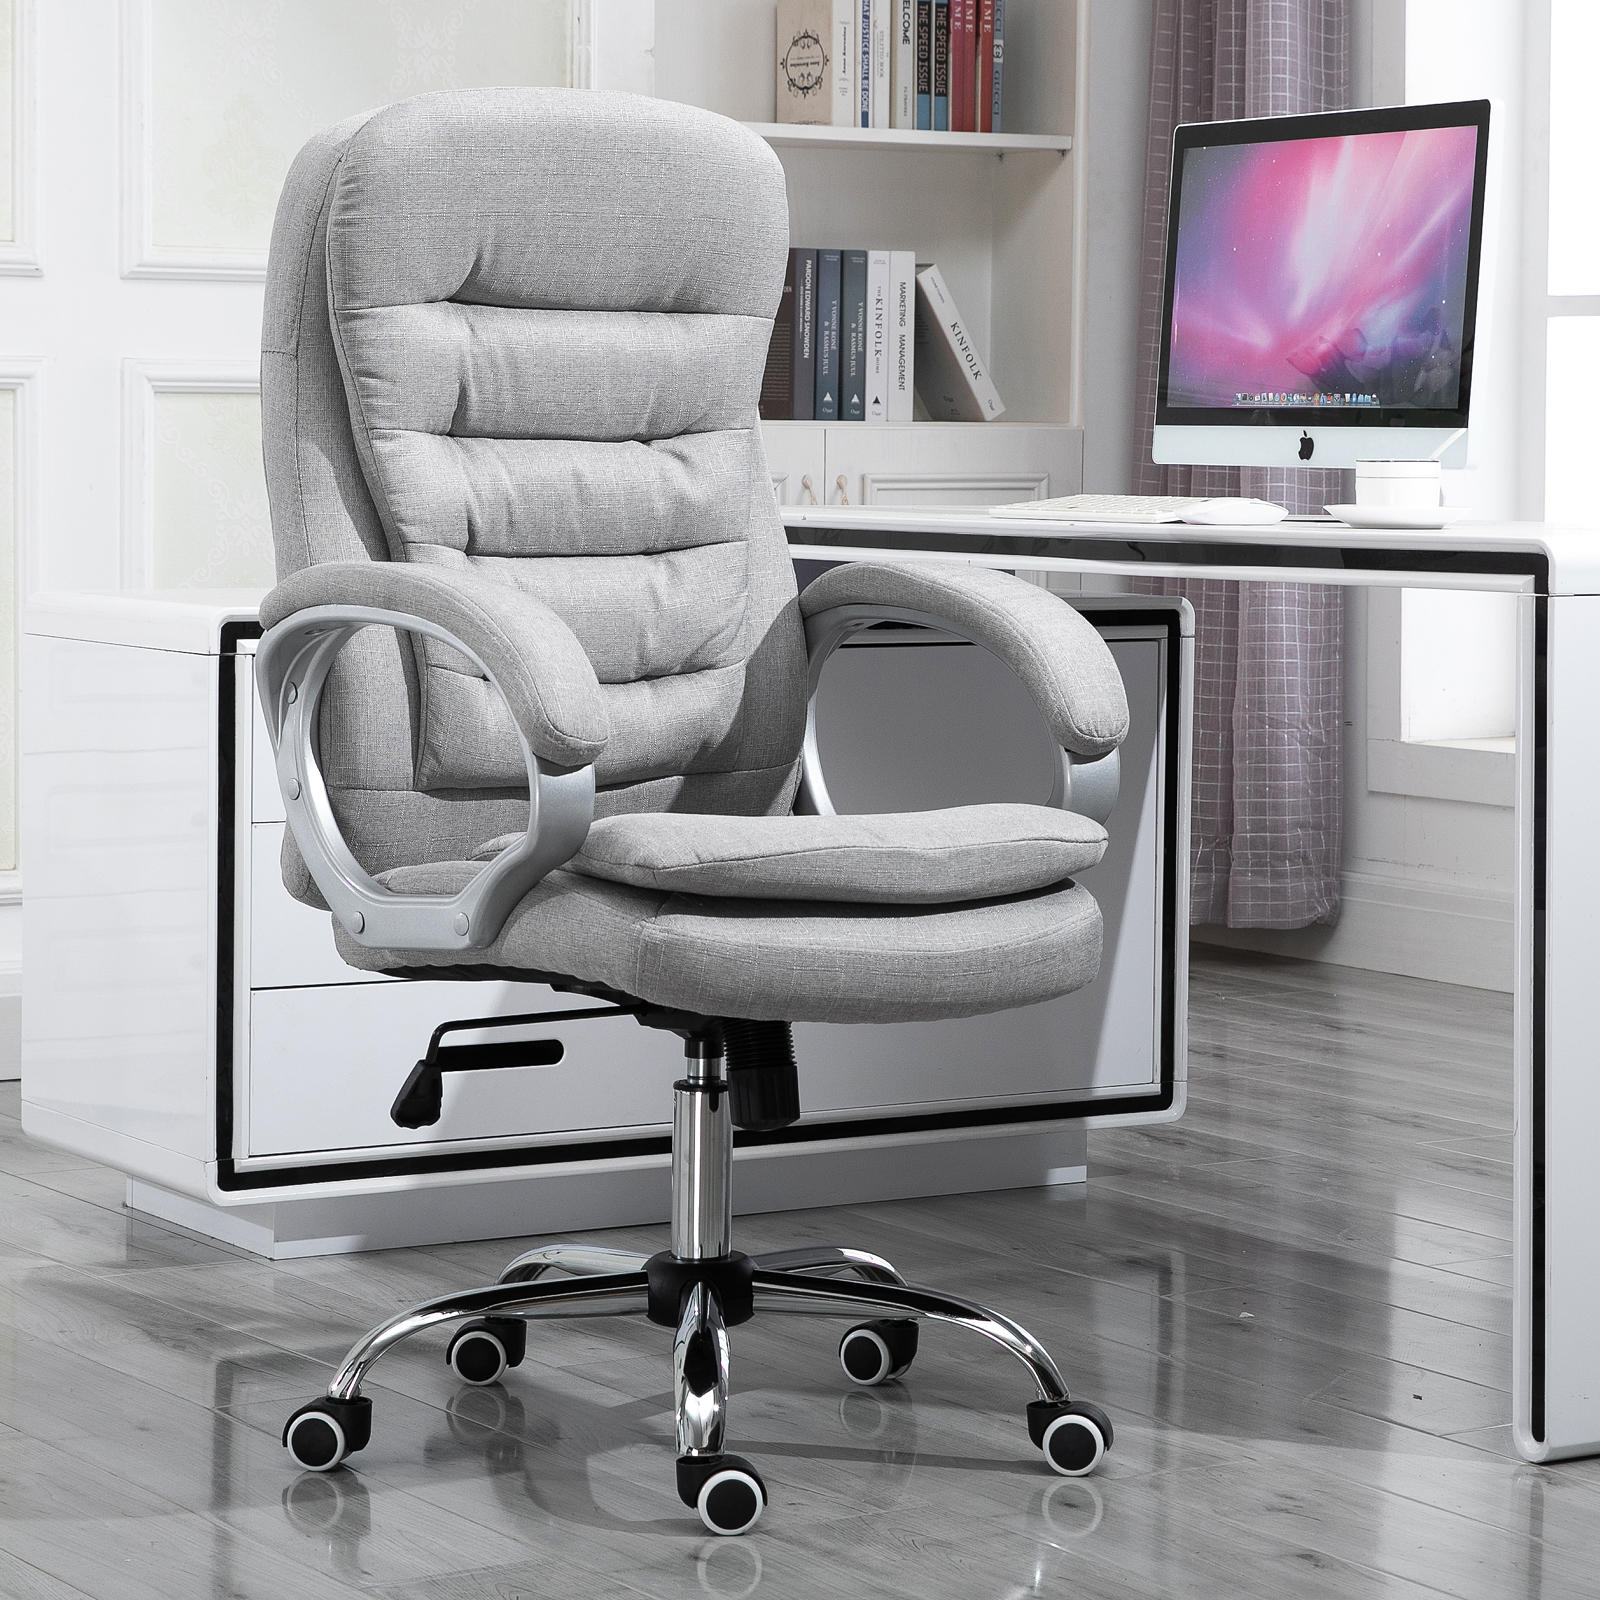 Details about Executive Swivel Office Computer Desk Chair with Armrests  Linen Fabric Grey